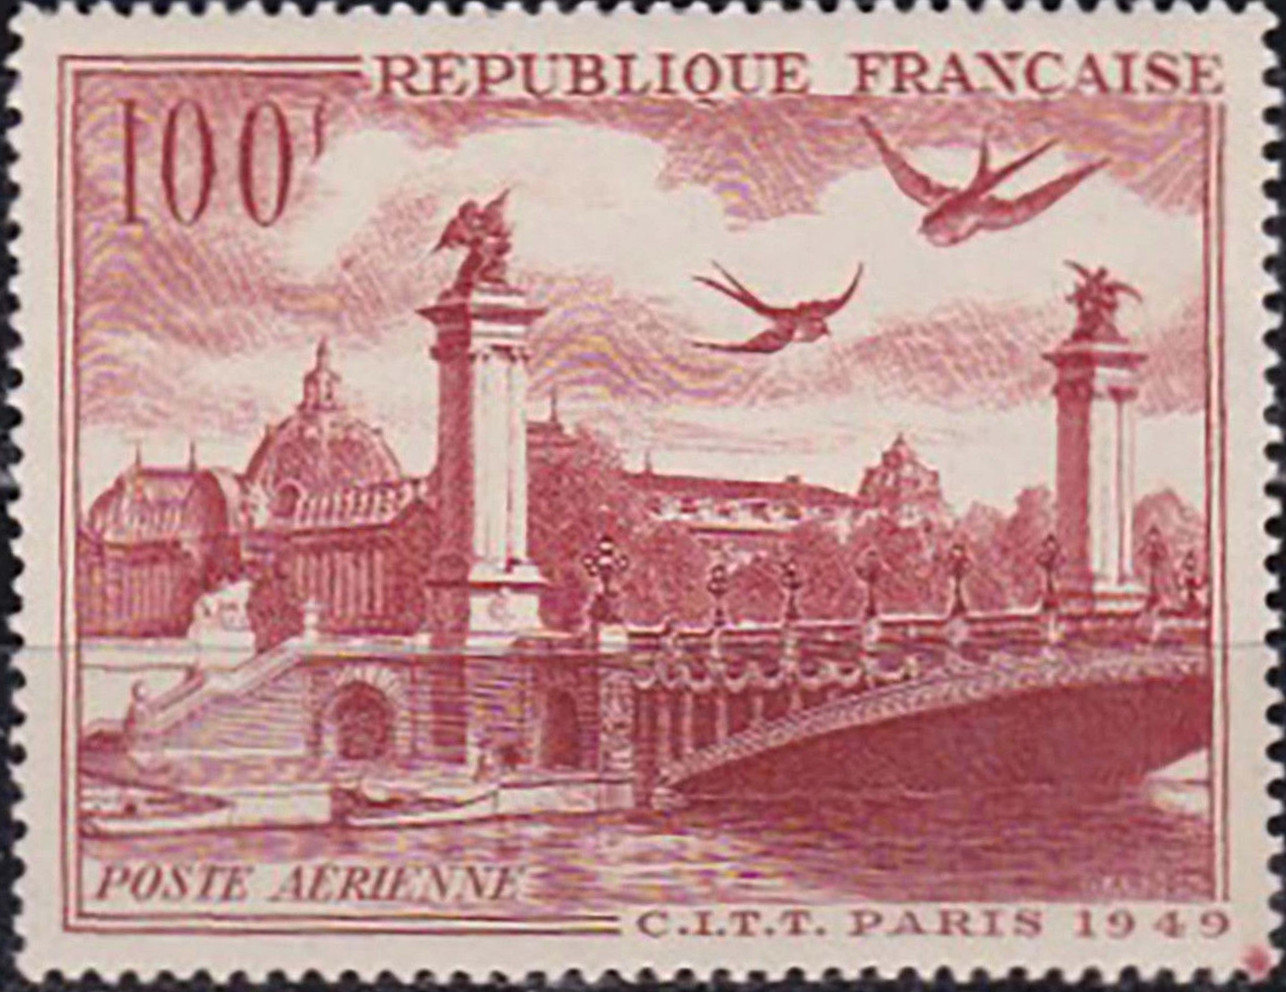 France - Scott #C28 (1949) mint, never hinged